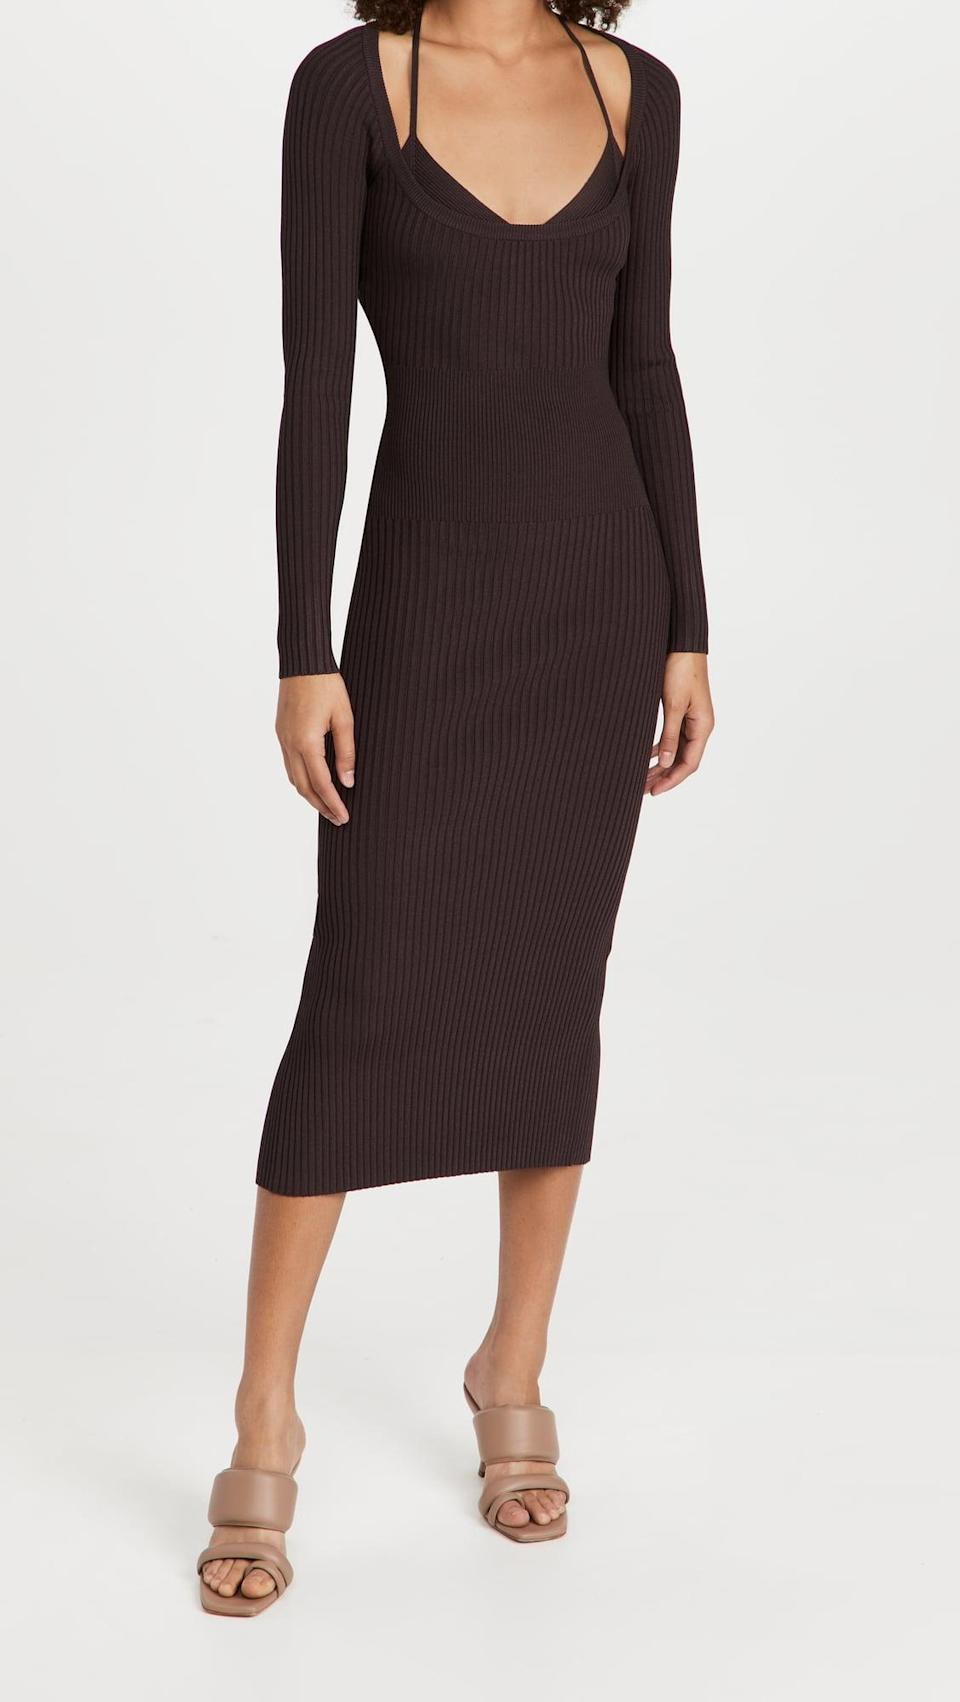 <p>This <span>Jonathan Simkhai Liza Scoop Neck Midi Dress</span> ($495) is super sexy. It comes with the matching strappy bra, which you can wear on it's own as well. It's like buying two pieces in one!</p>